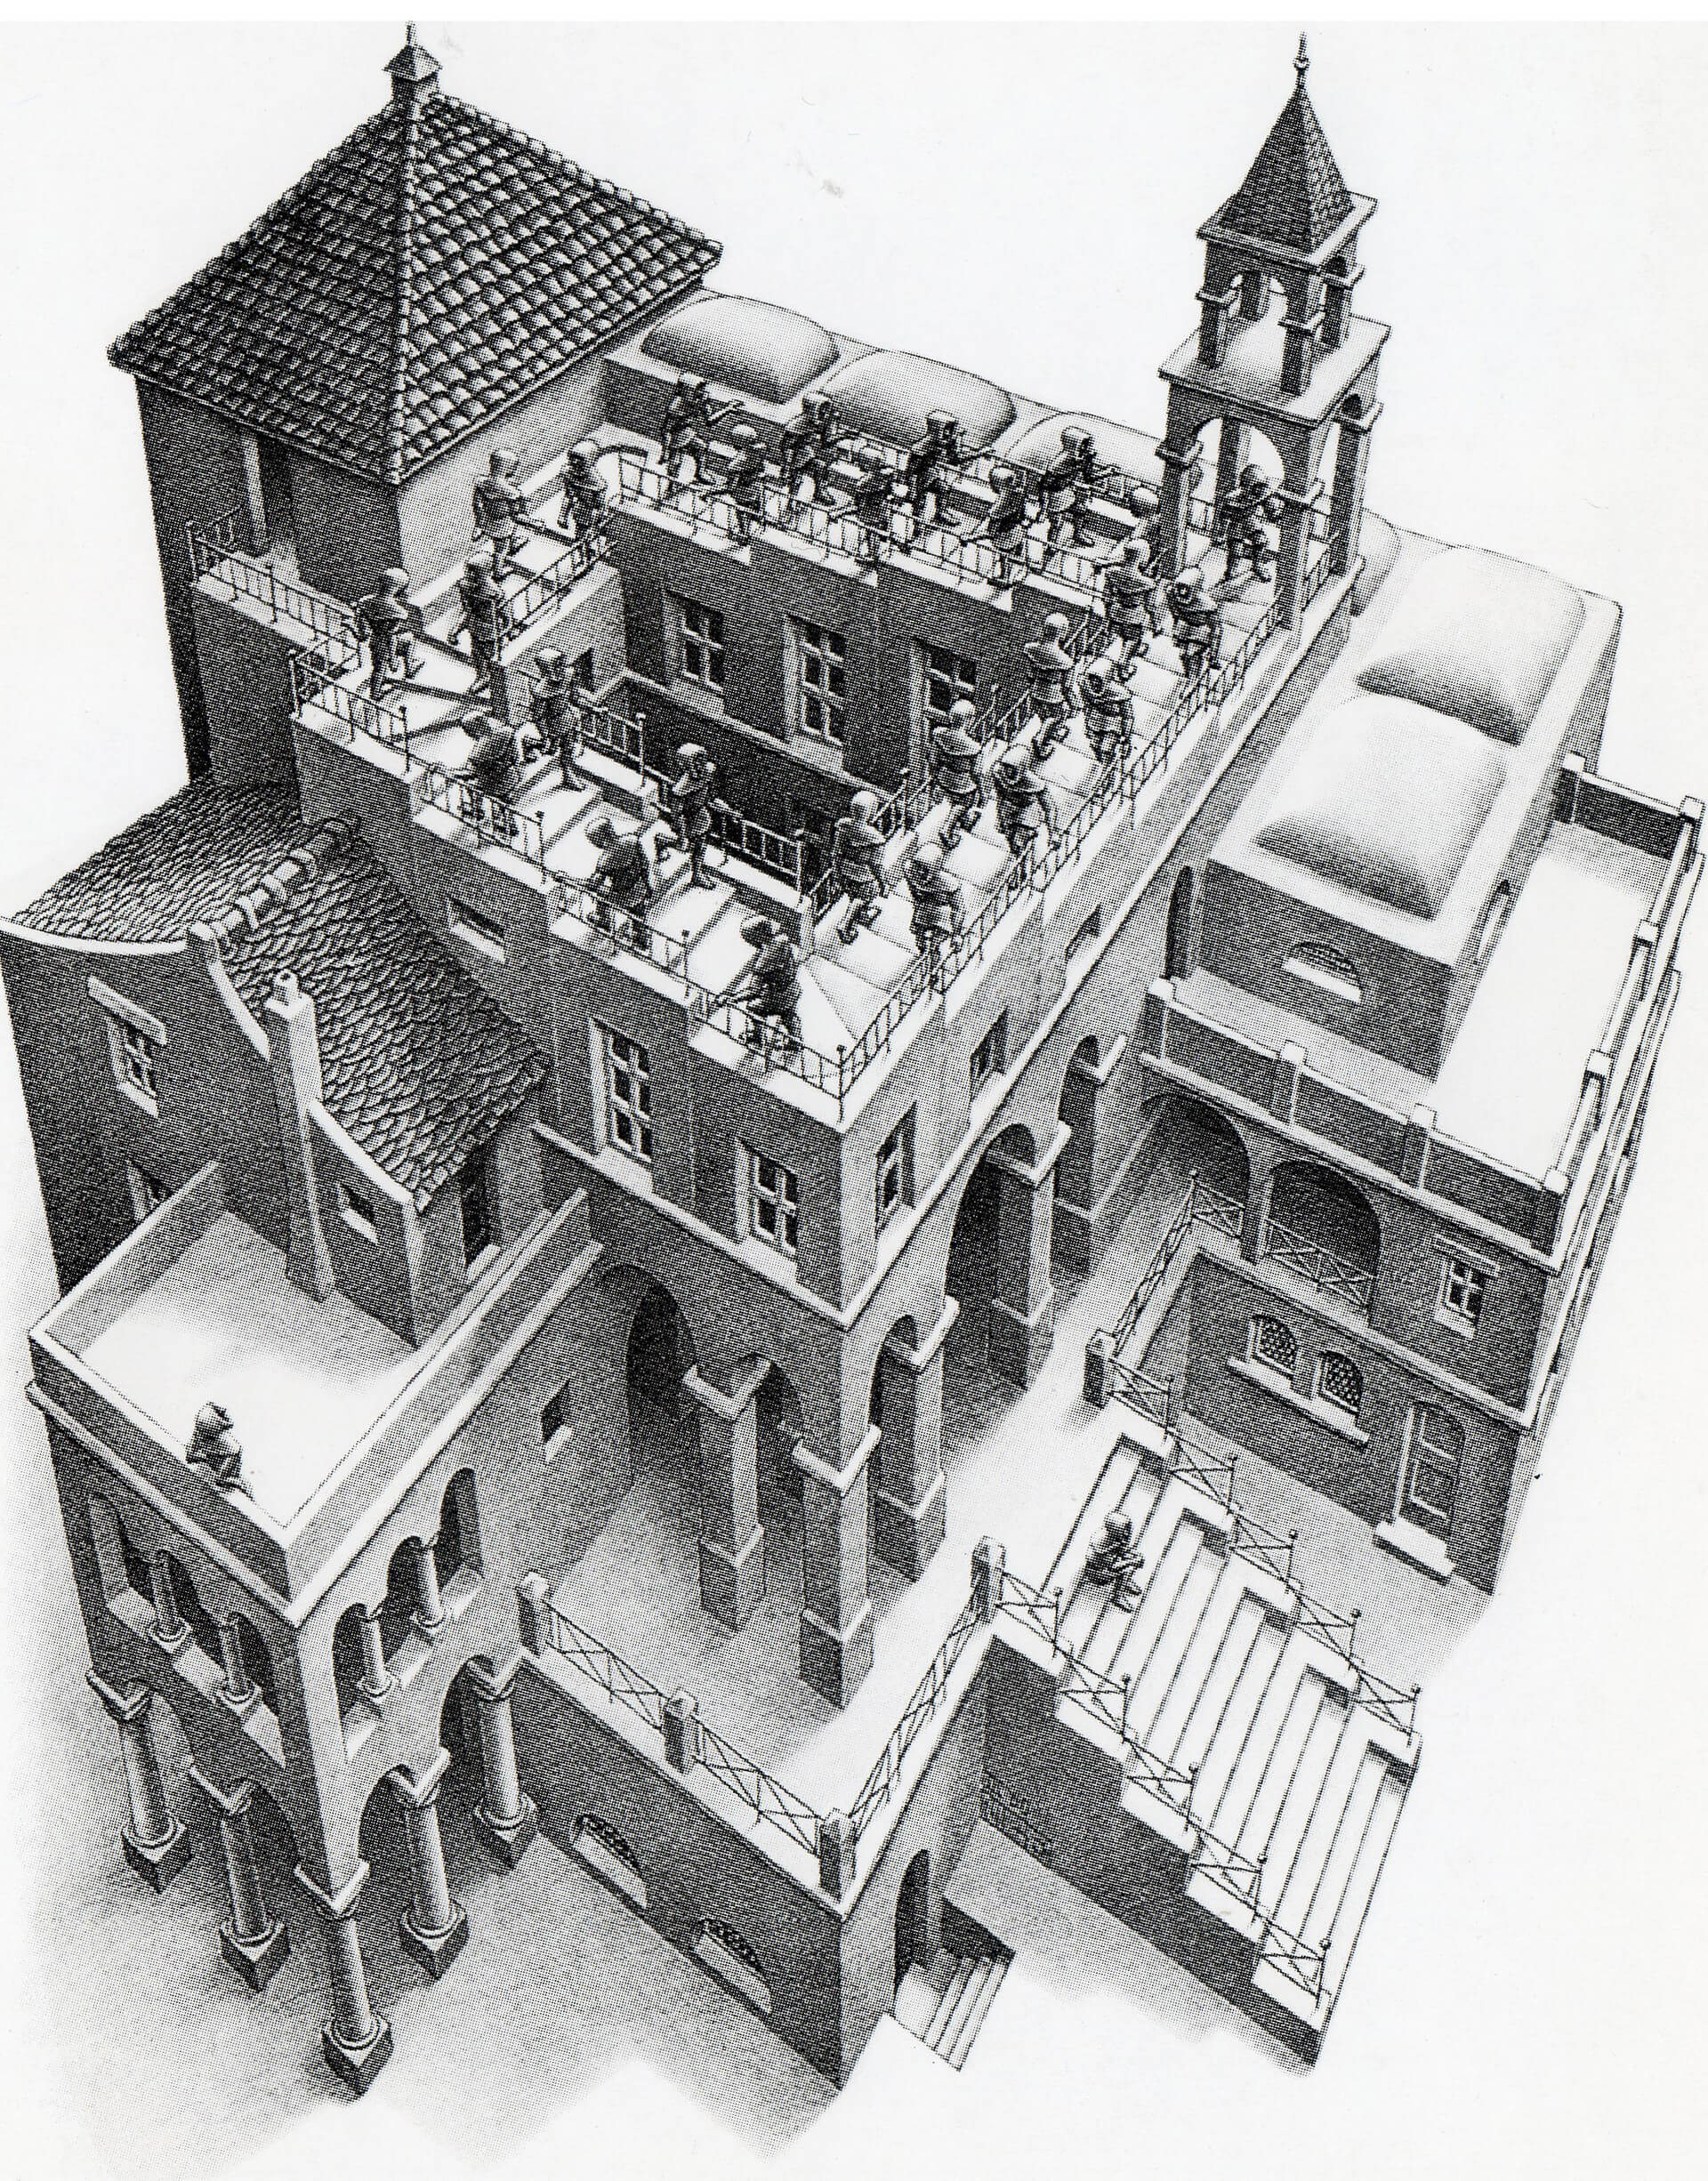 'Ascending and Descending' lithograph with the infinite loop of staircase | Maurits Cornelis Escher | STIRworld